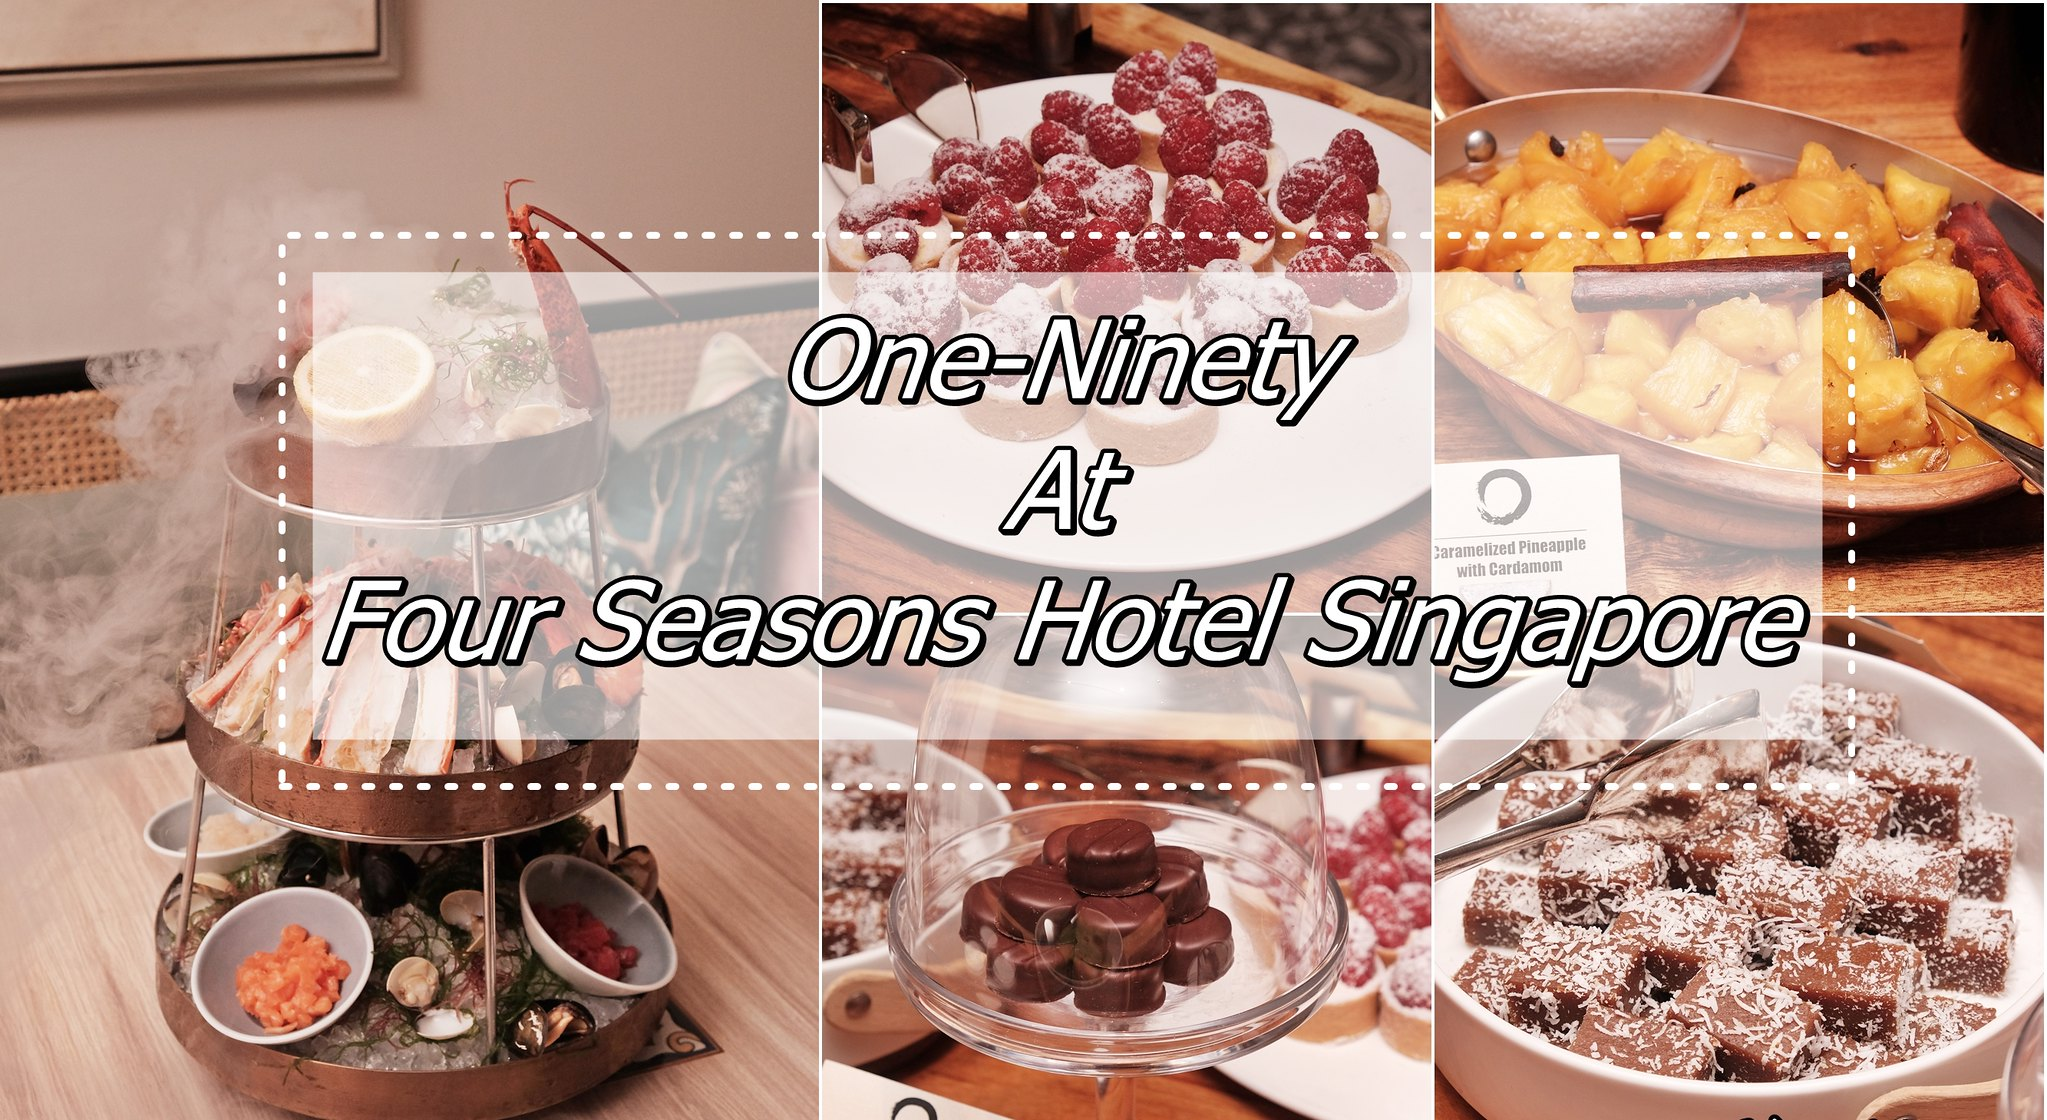 [SG EATS] One-Ninety At Four Seasons Hotel Singapore- Botanical Inspired Modern Asian Brasserie